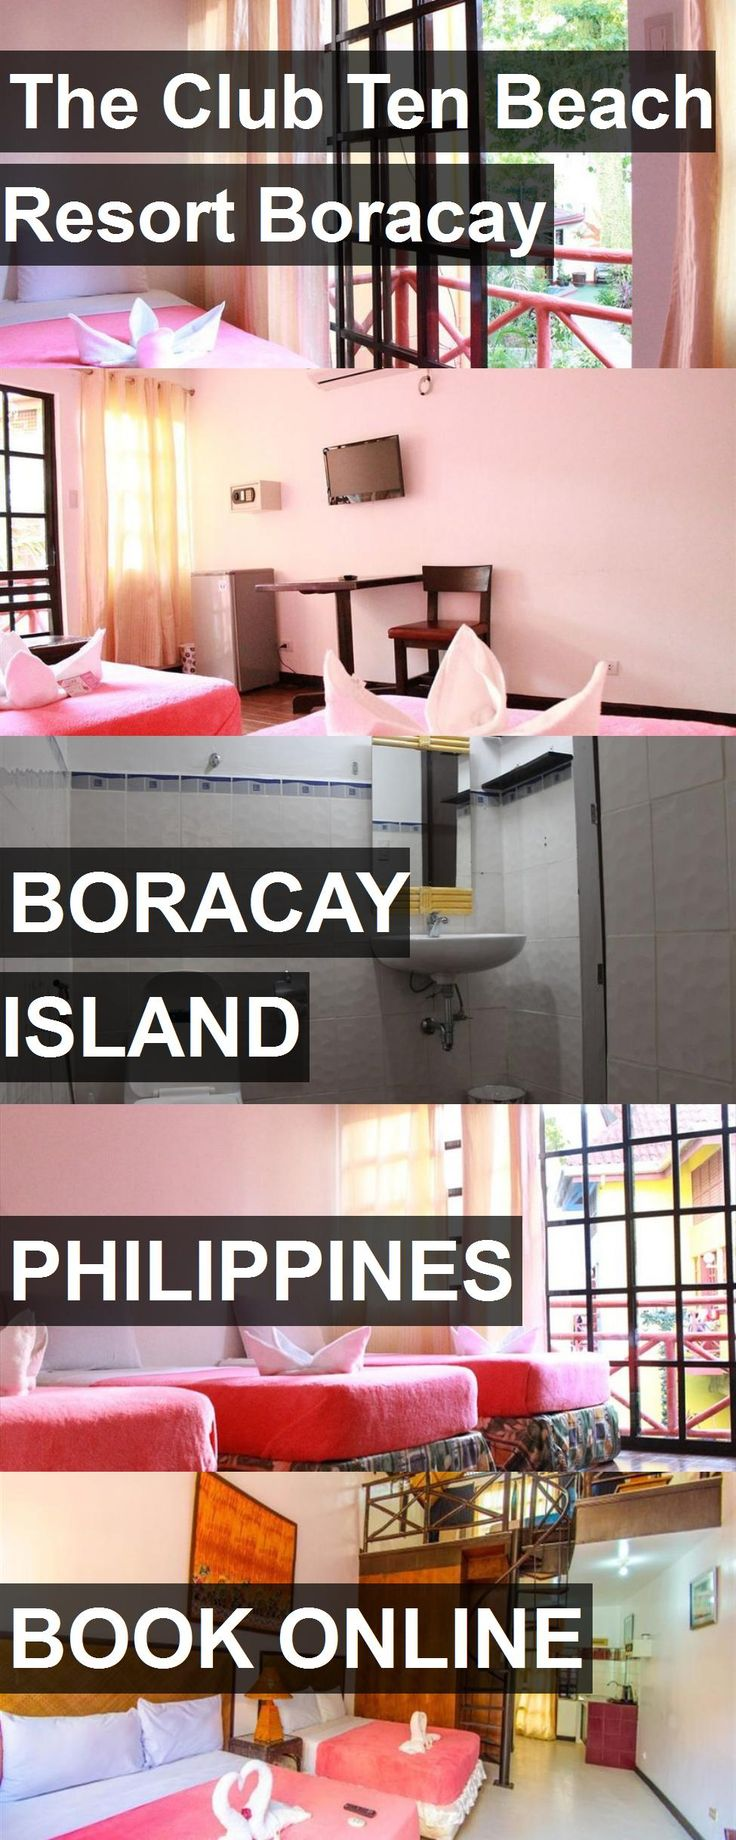 Hotel The Club Ten Beach Resort Boracay in Boracay Island, Philippines. For more information, photos, reviews and best prices please follow the link. #Philippines #BoracayIsland #travel #vacation #hotel